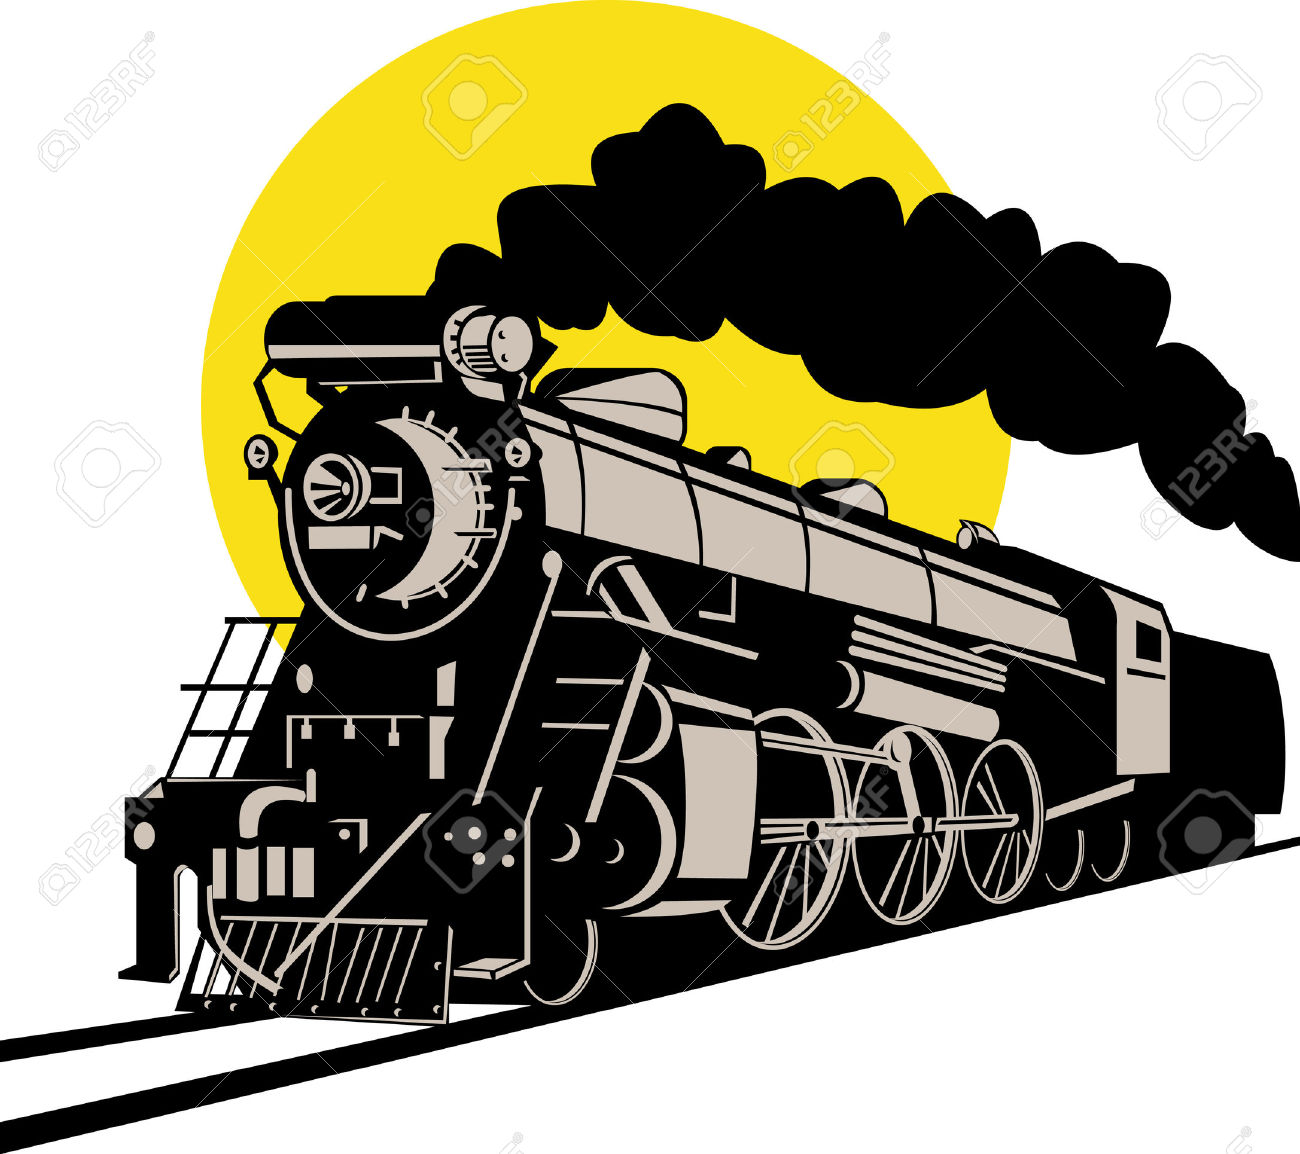 Steam train clipart free royalty free Steam Train Clipart | Free download best Steam Train Clipart ... royalty free